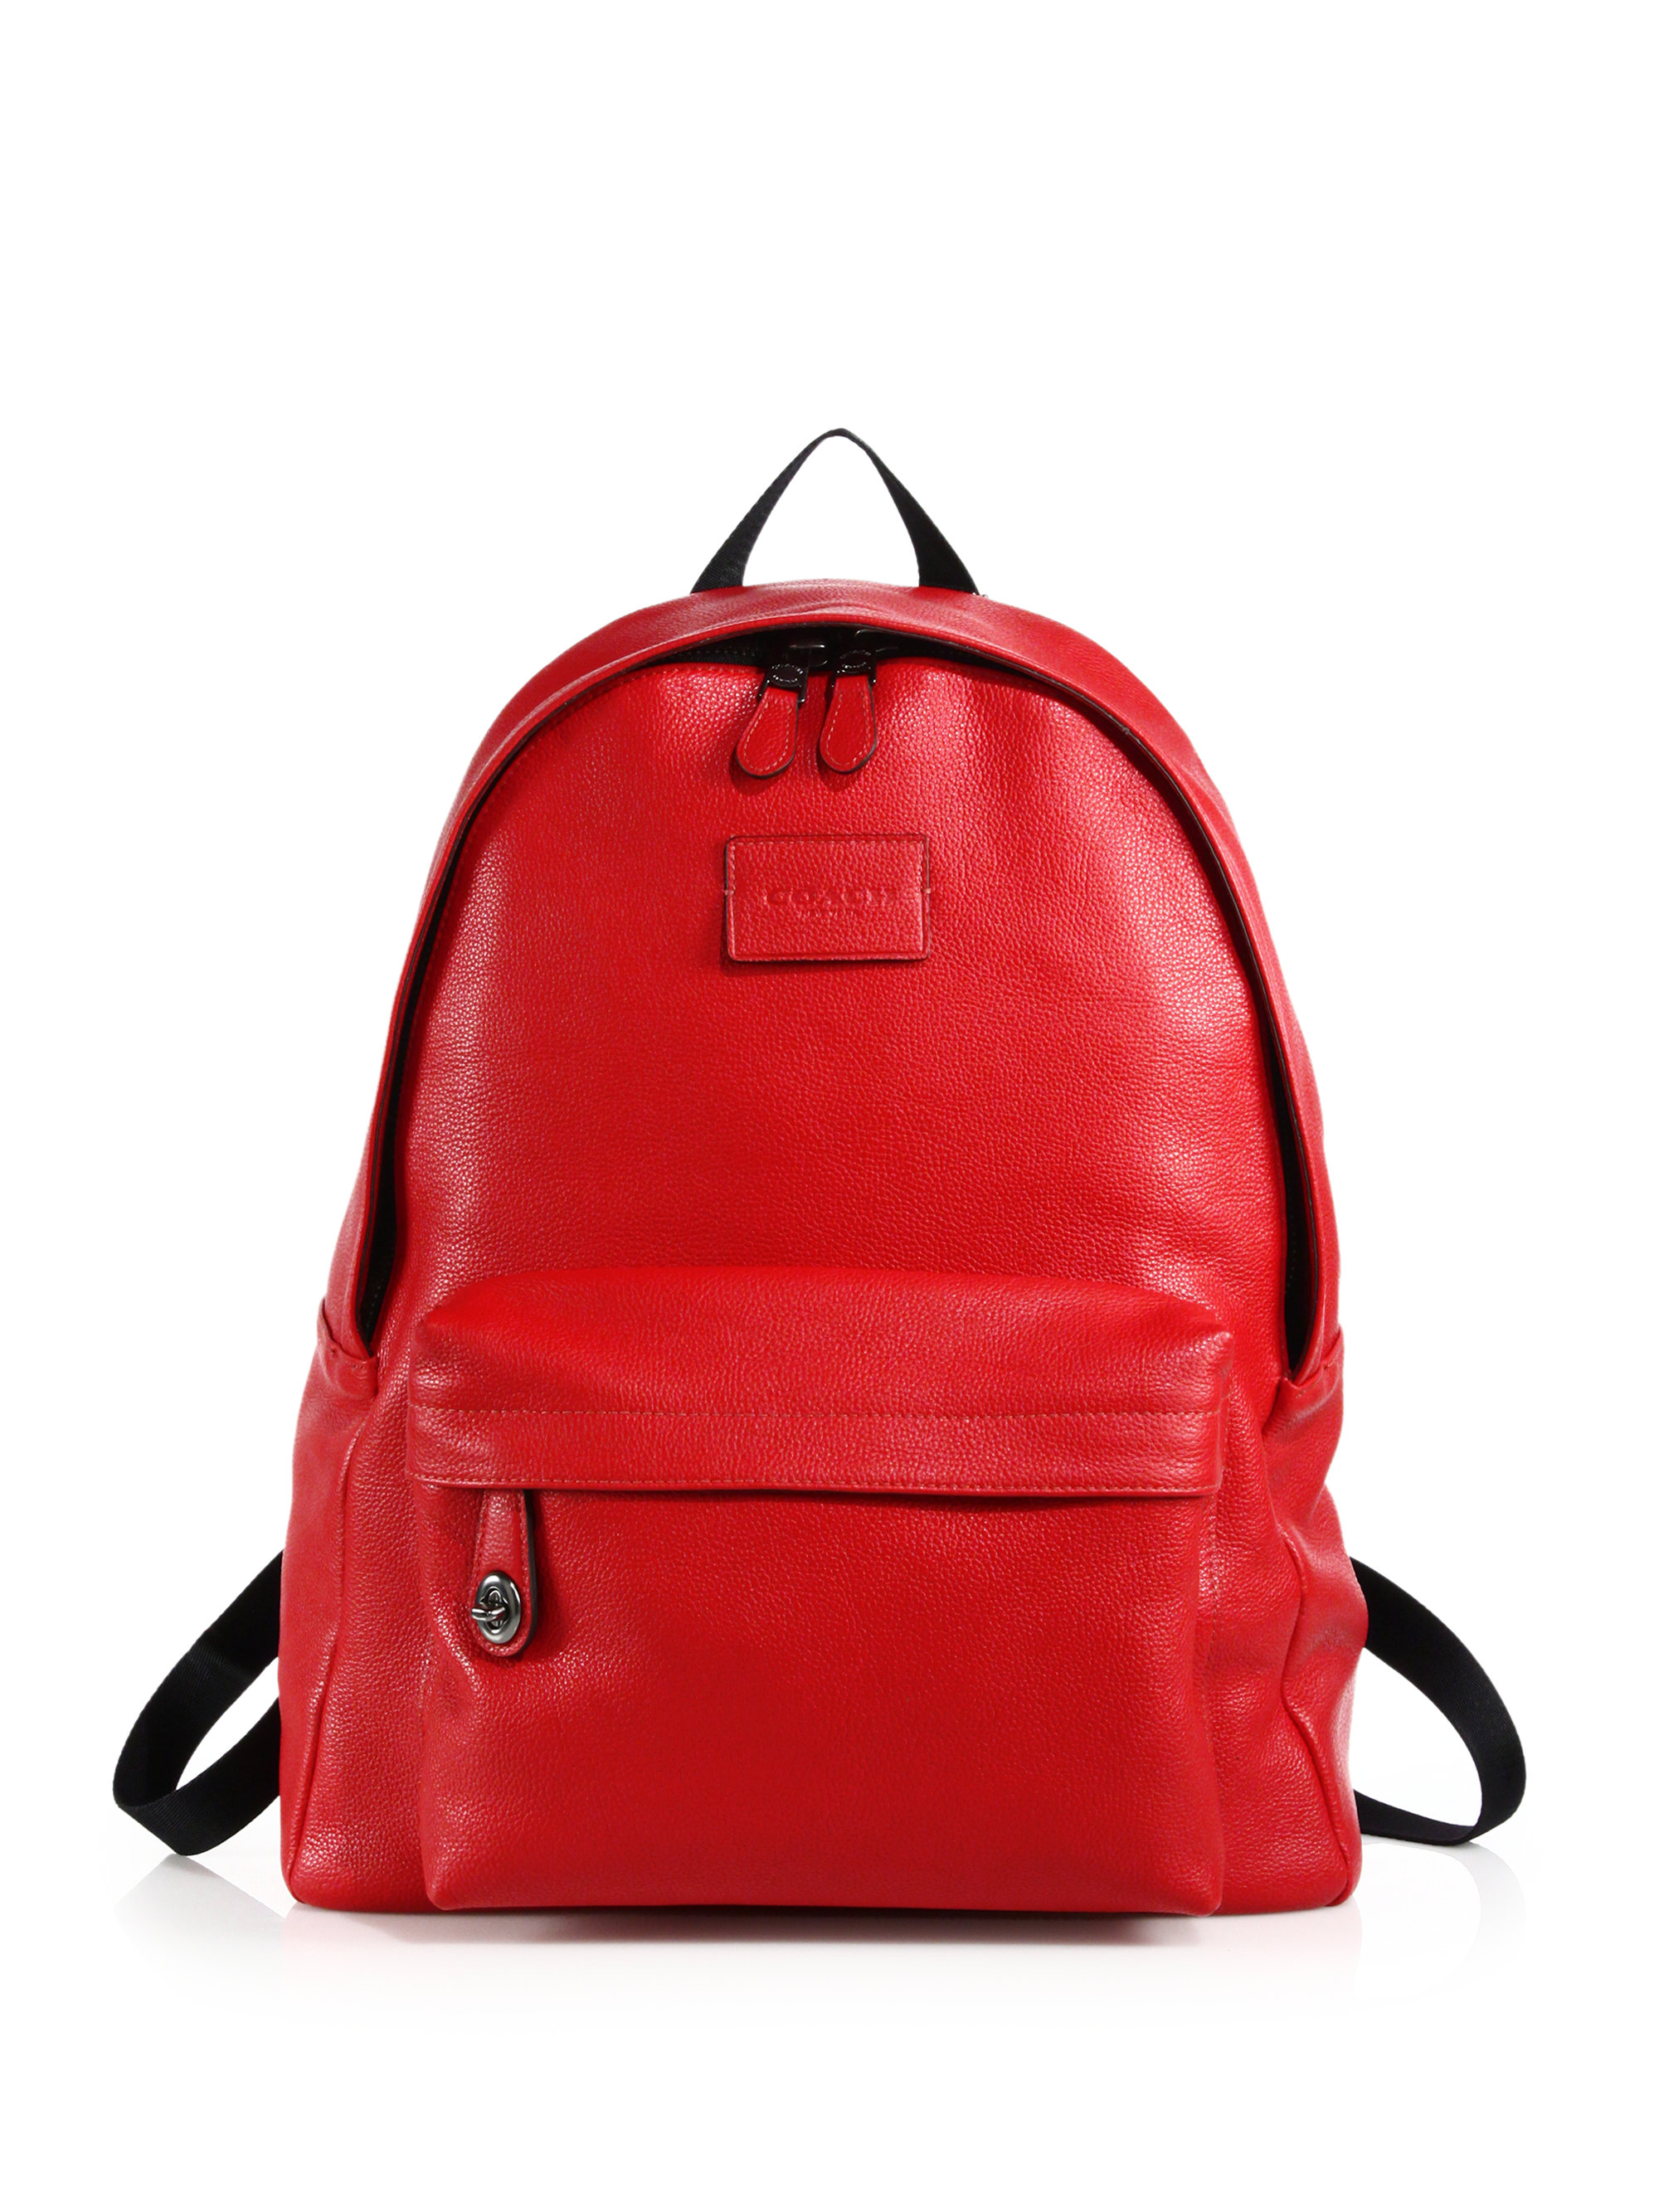 Red Leather Backpack uQzdEdQm